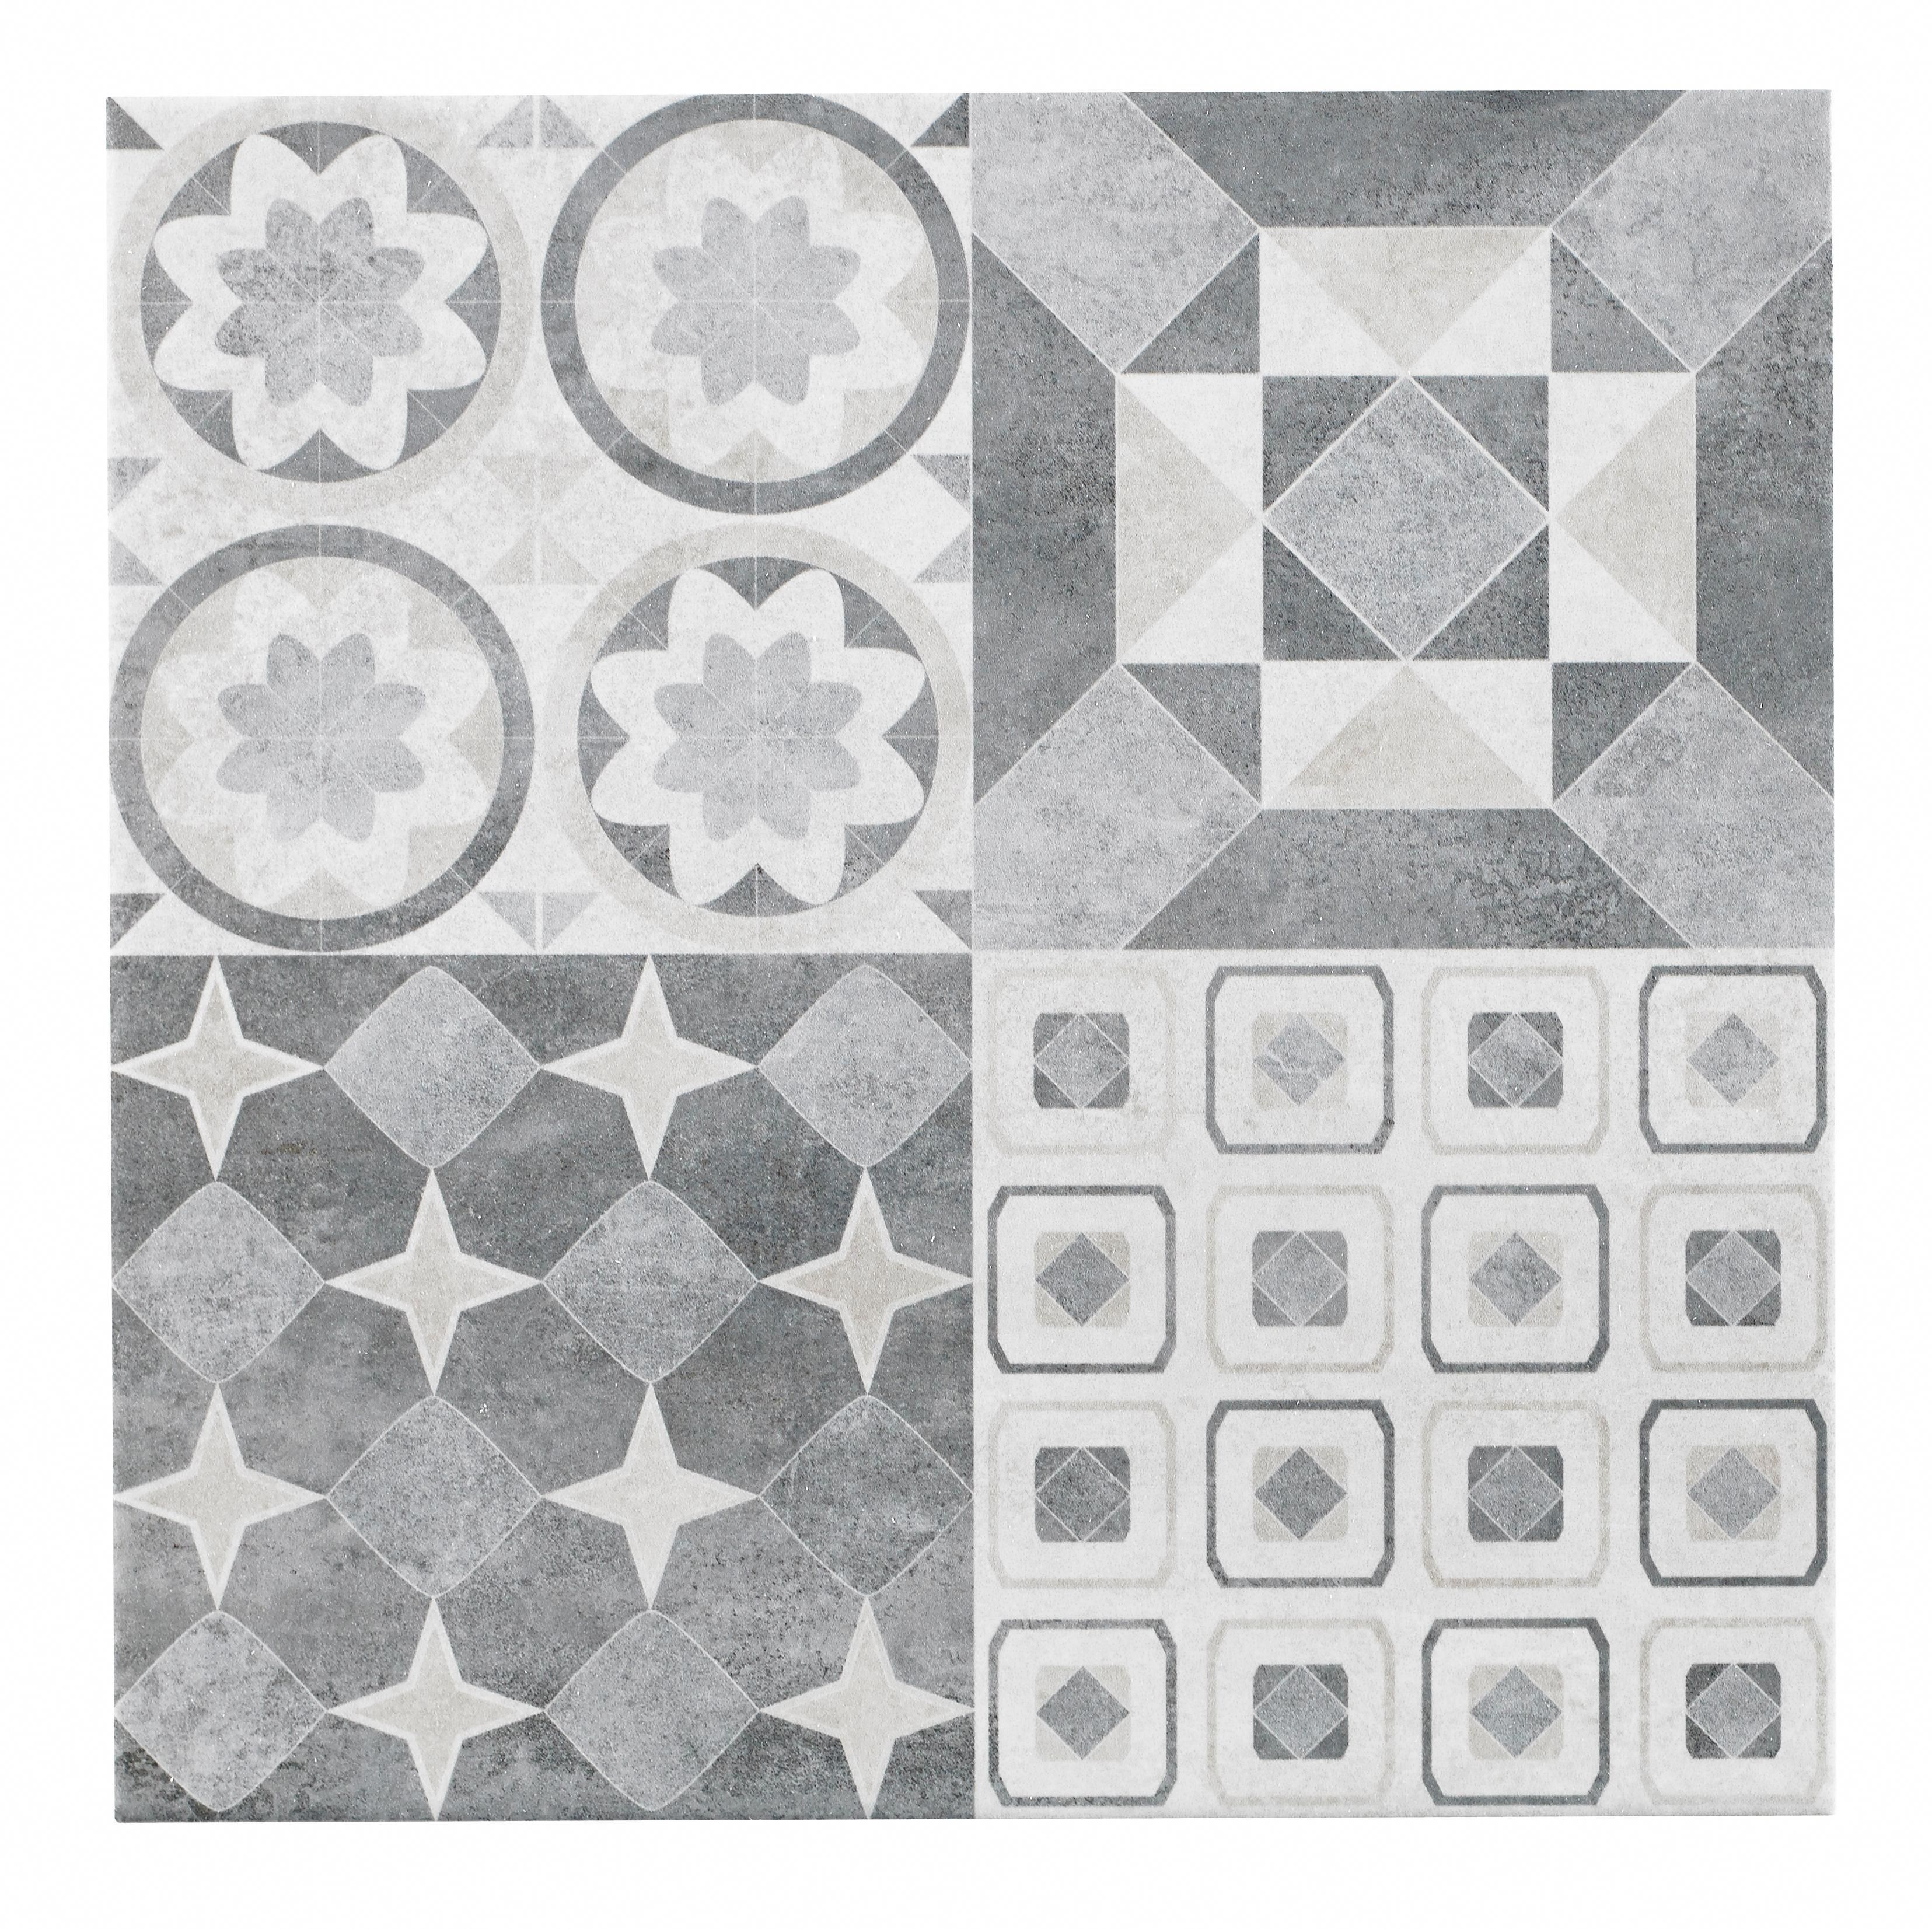 Lofthouse French Grey Patchwork Ceramic Wall Floor Tile Pack Of 9 L 331mm W 331mm Departments Diy At B Bathroom Floor Tiles Tile Floor Grey Flooring